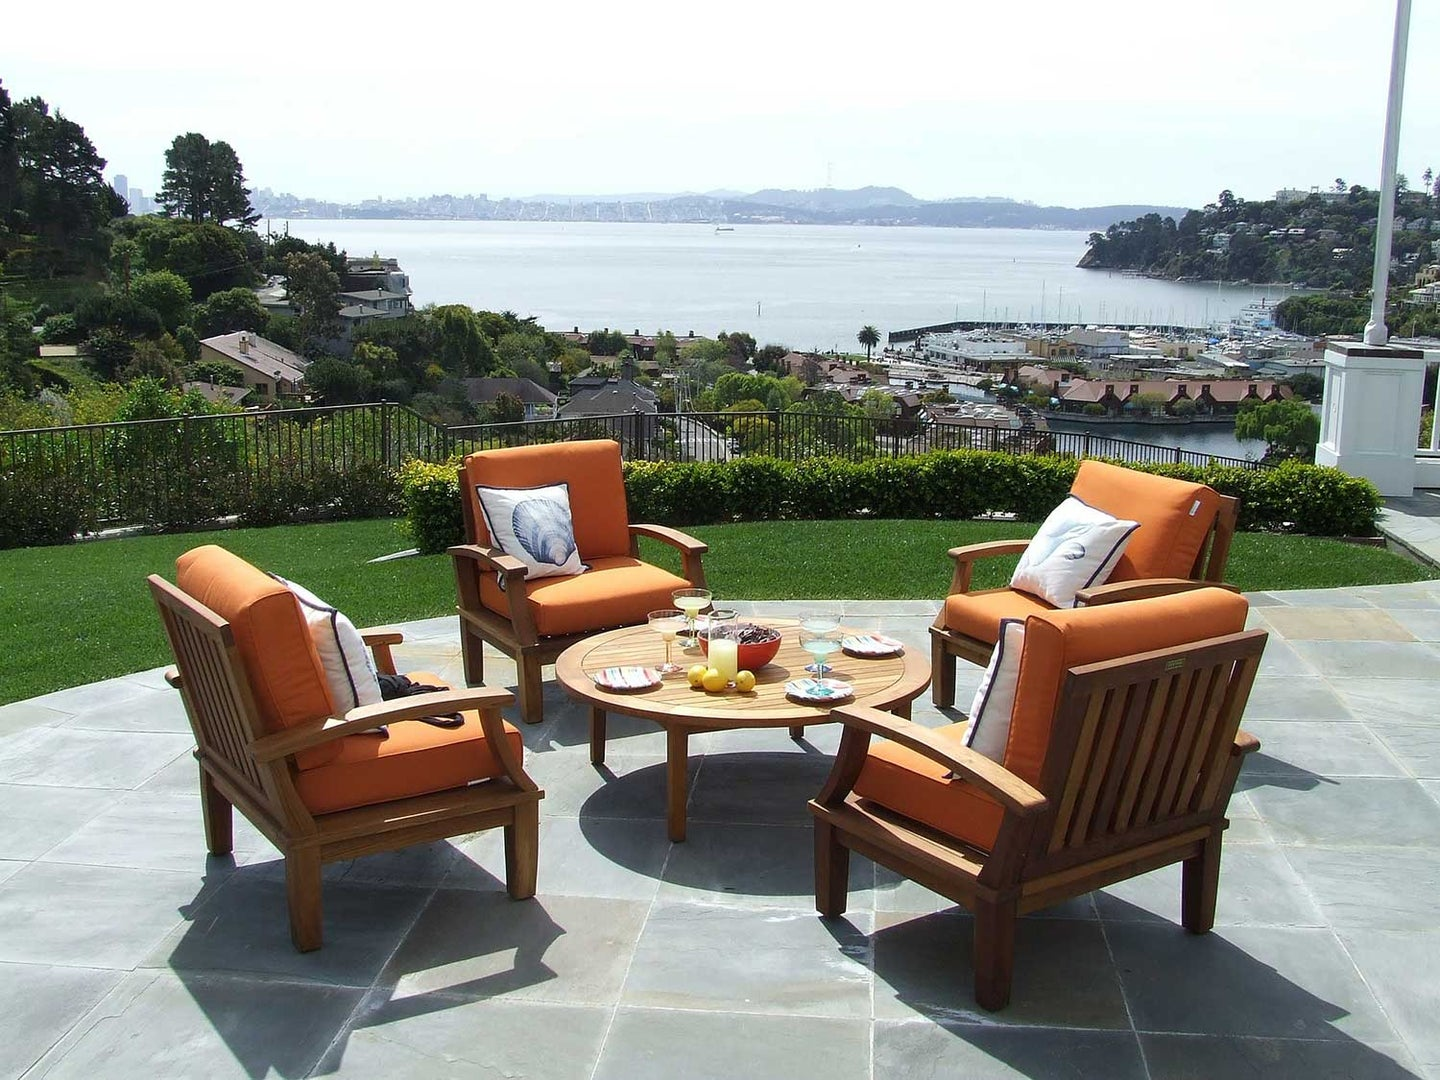 Outdoor patio furniture sitting outside by water.